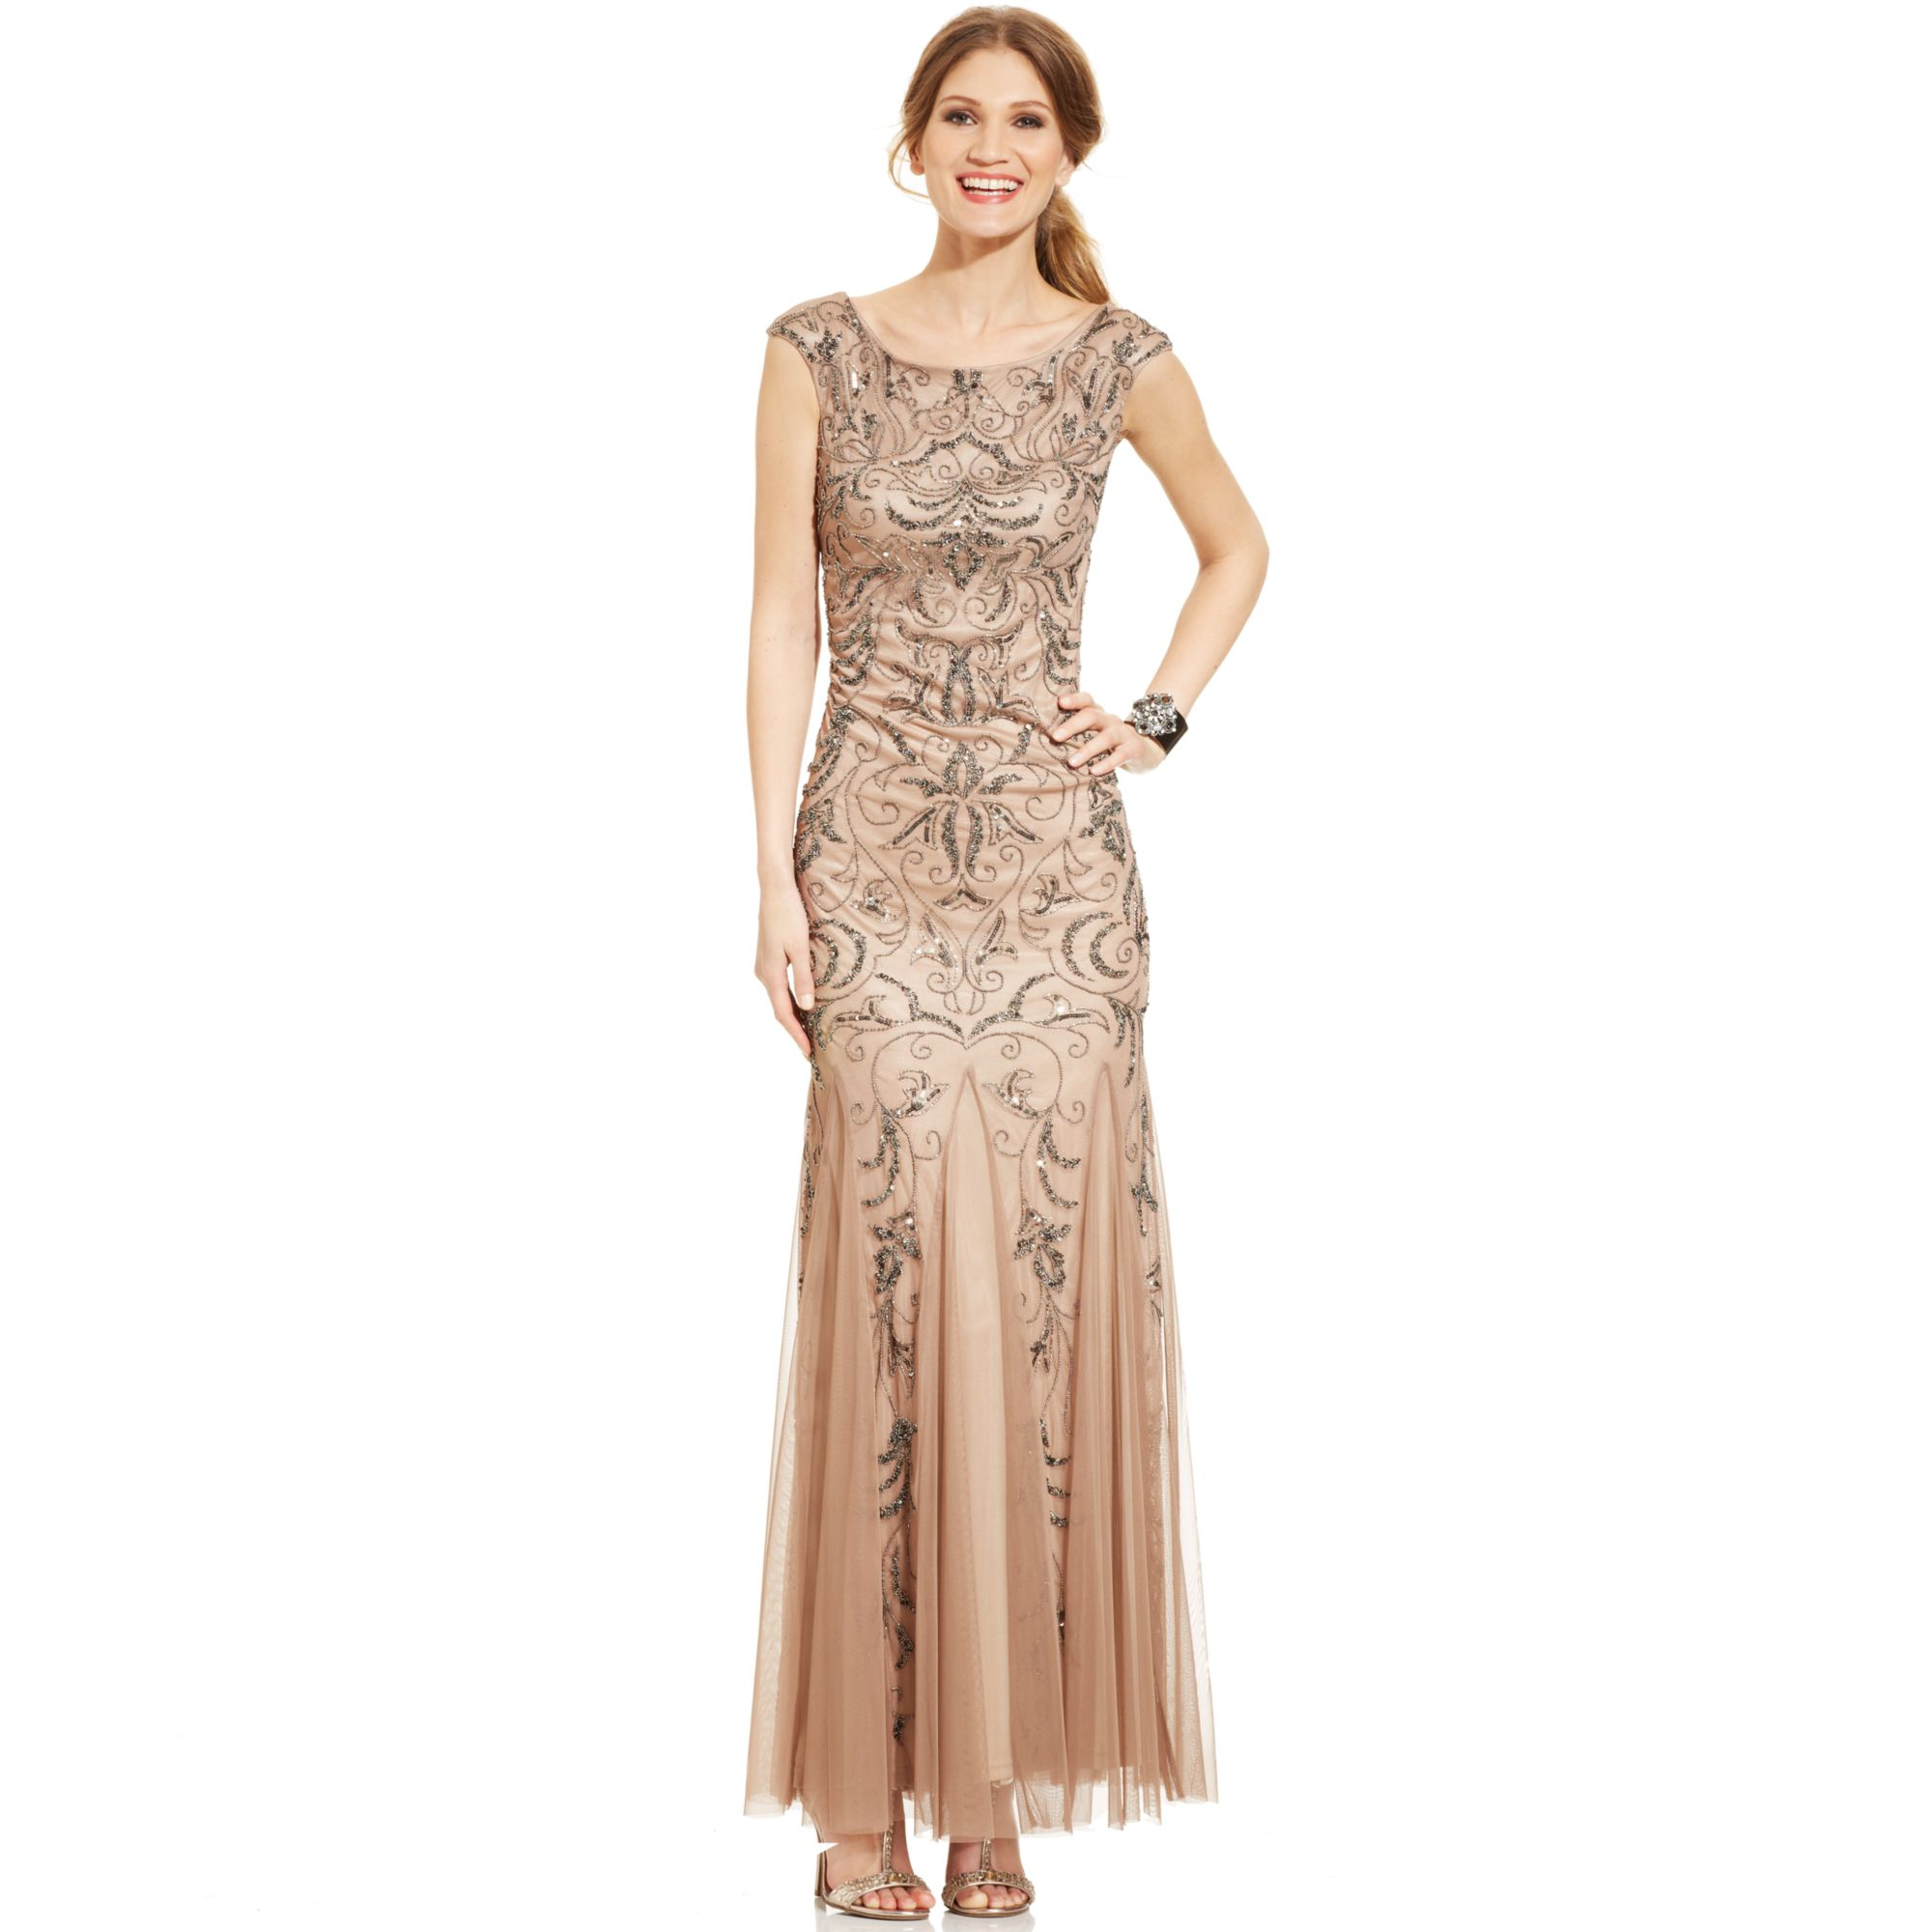 Lyst - Adrianna Papell Capsleeve Beaded Mermaid Gown in Natural